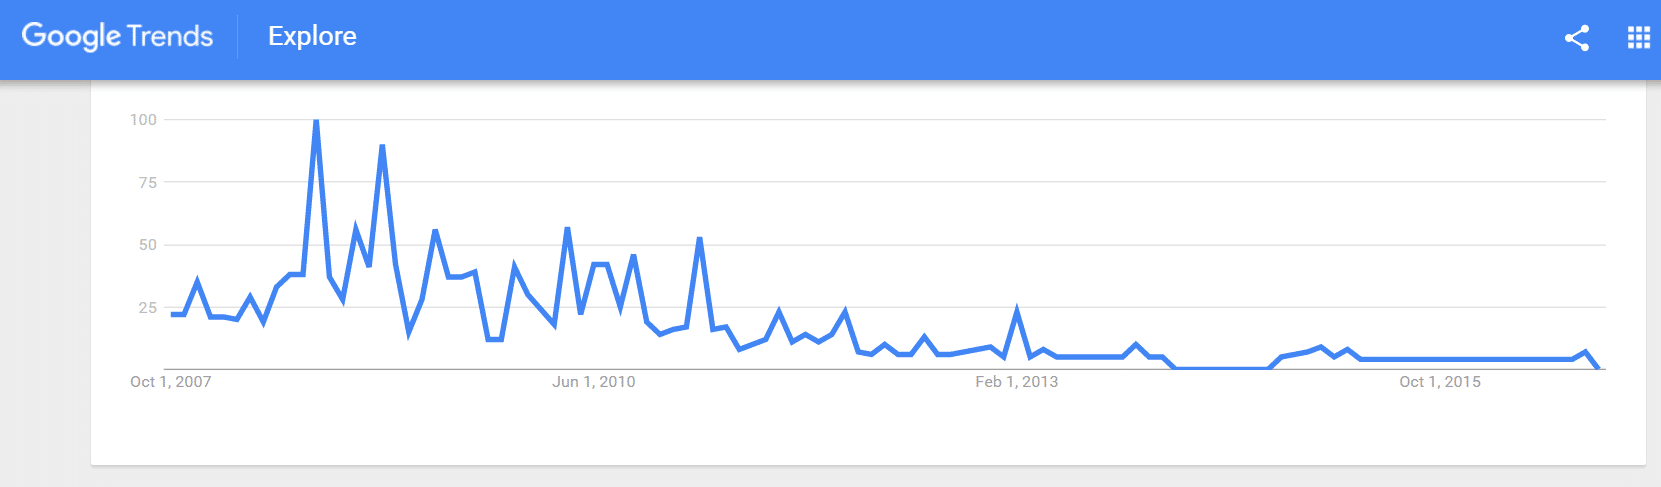 gamerstube google trends